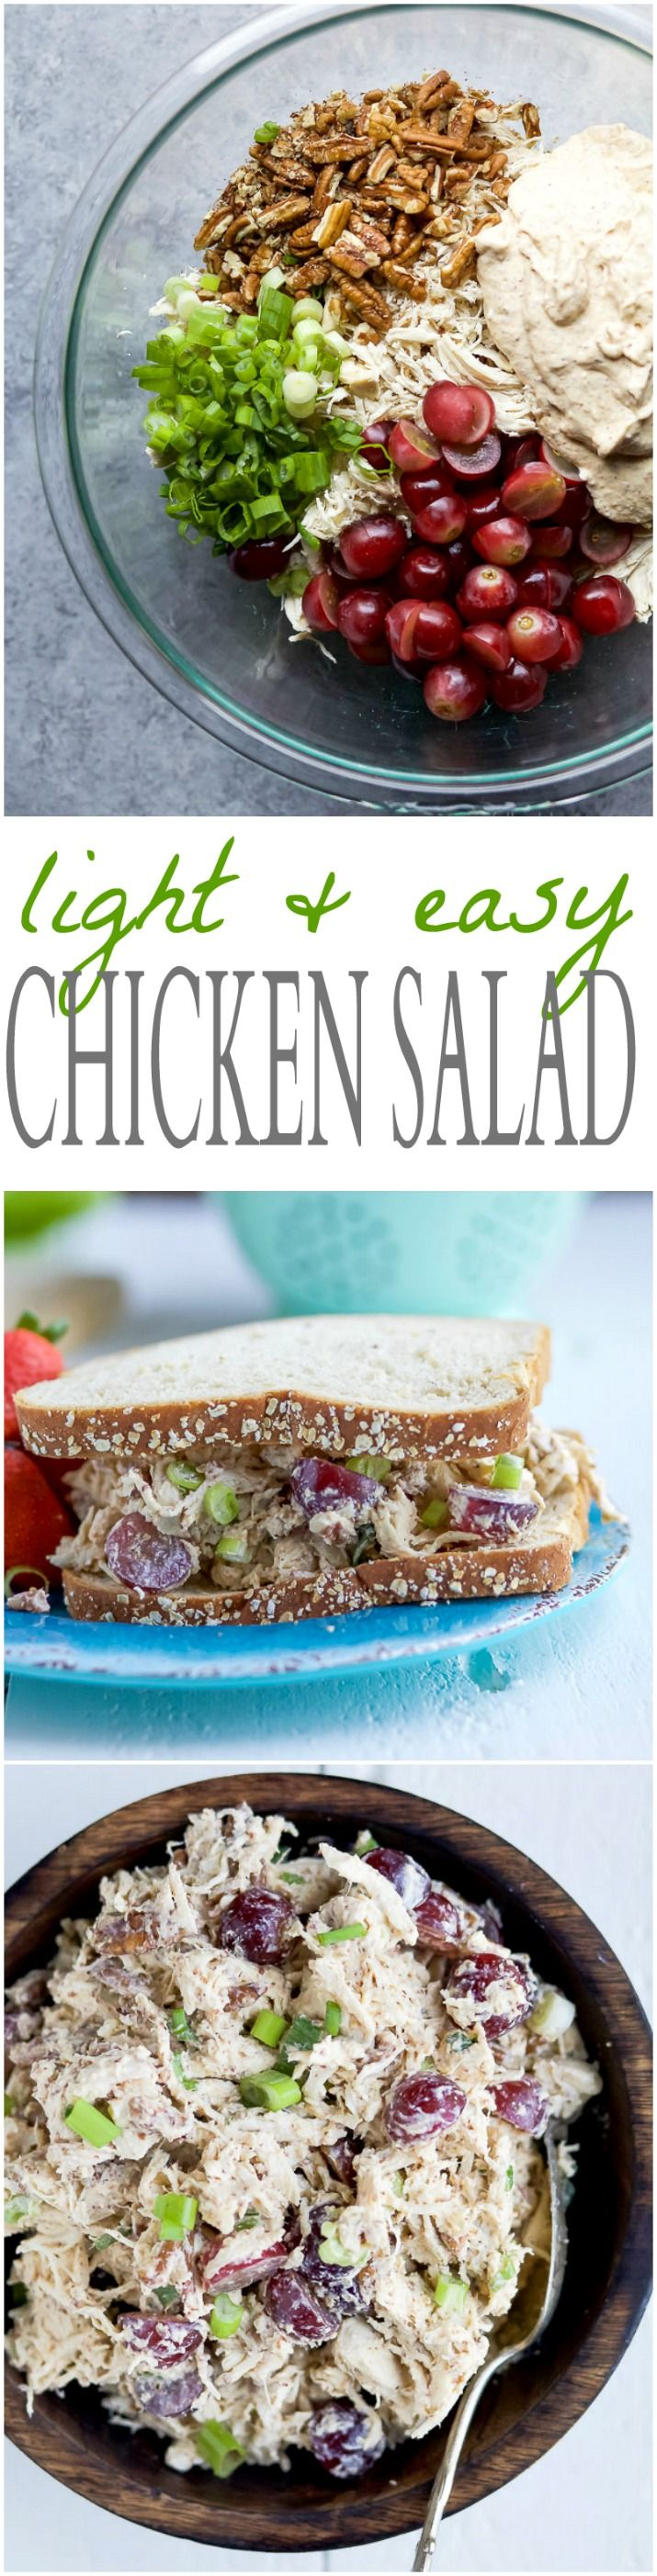 LIGHT & EASY CHICKEN SALAD RECIPE | joyfulhealthyeats.com | gluten free recipes | lunch recipes | sandwiches | chicken salad | chicken recipes | easy dinner ideas | kid friendly | 30 minute meal | healthy | high protein | low carb recipes